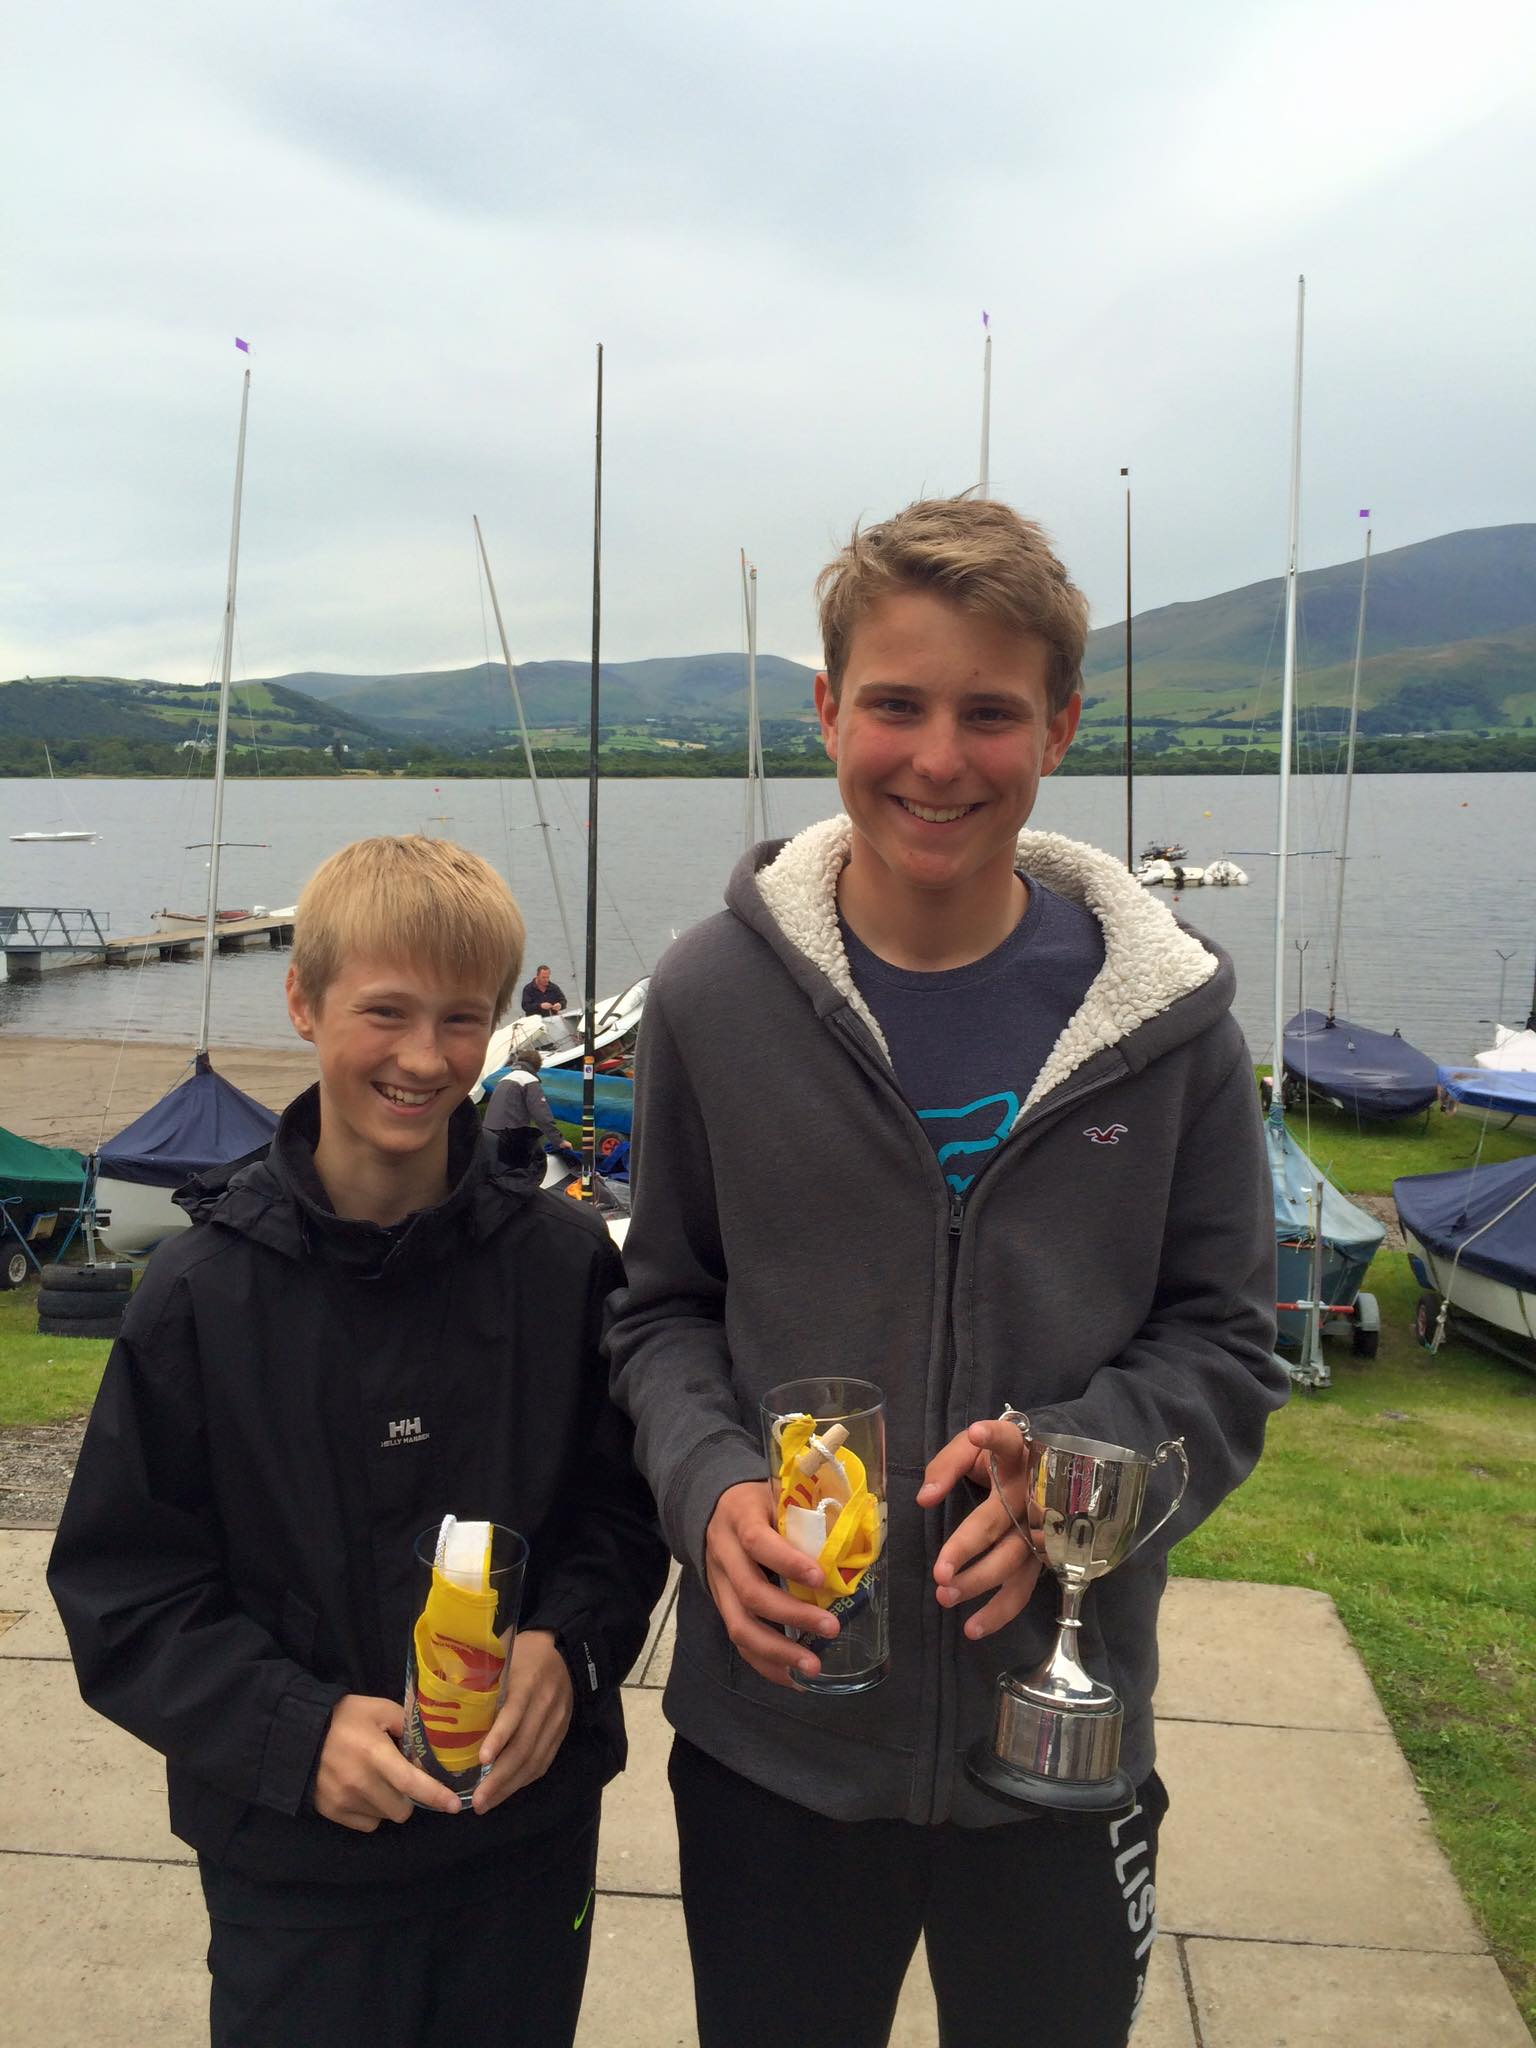 Two teenagers with cup and prizes